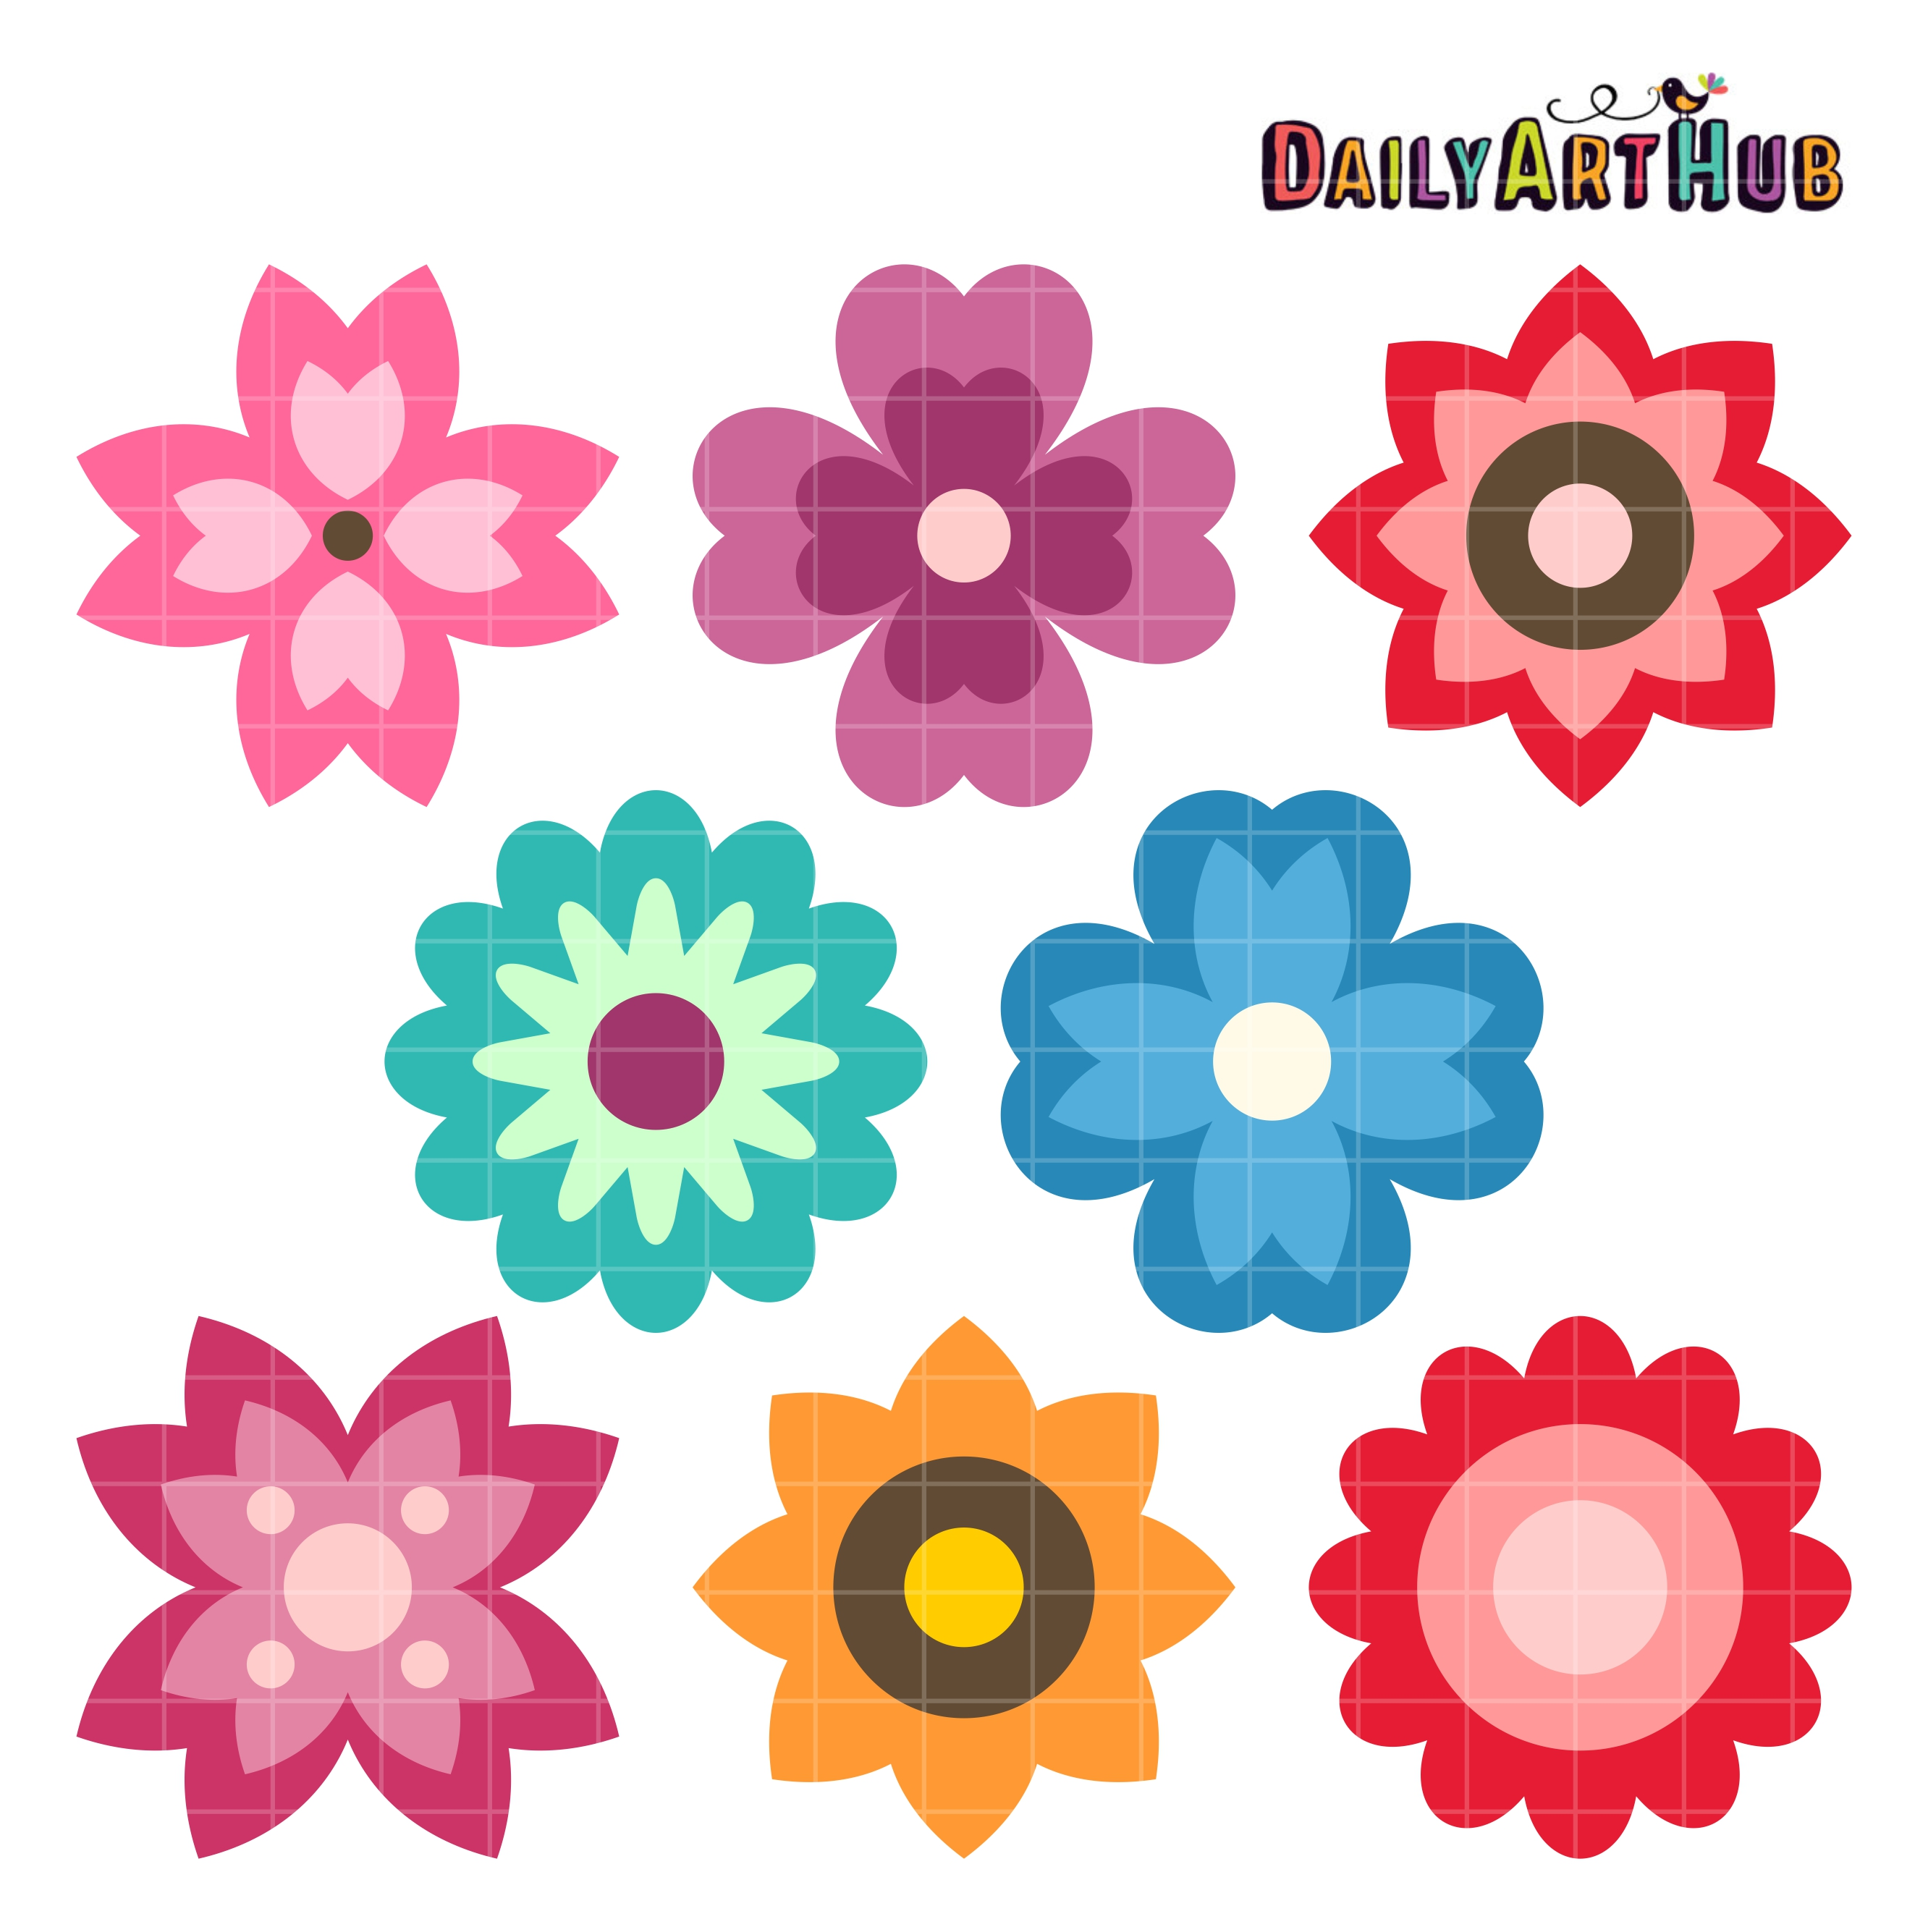 Simple Spring Flowers Clip Art Set Daily Art Hub Free Clip Art